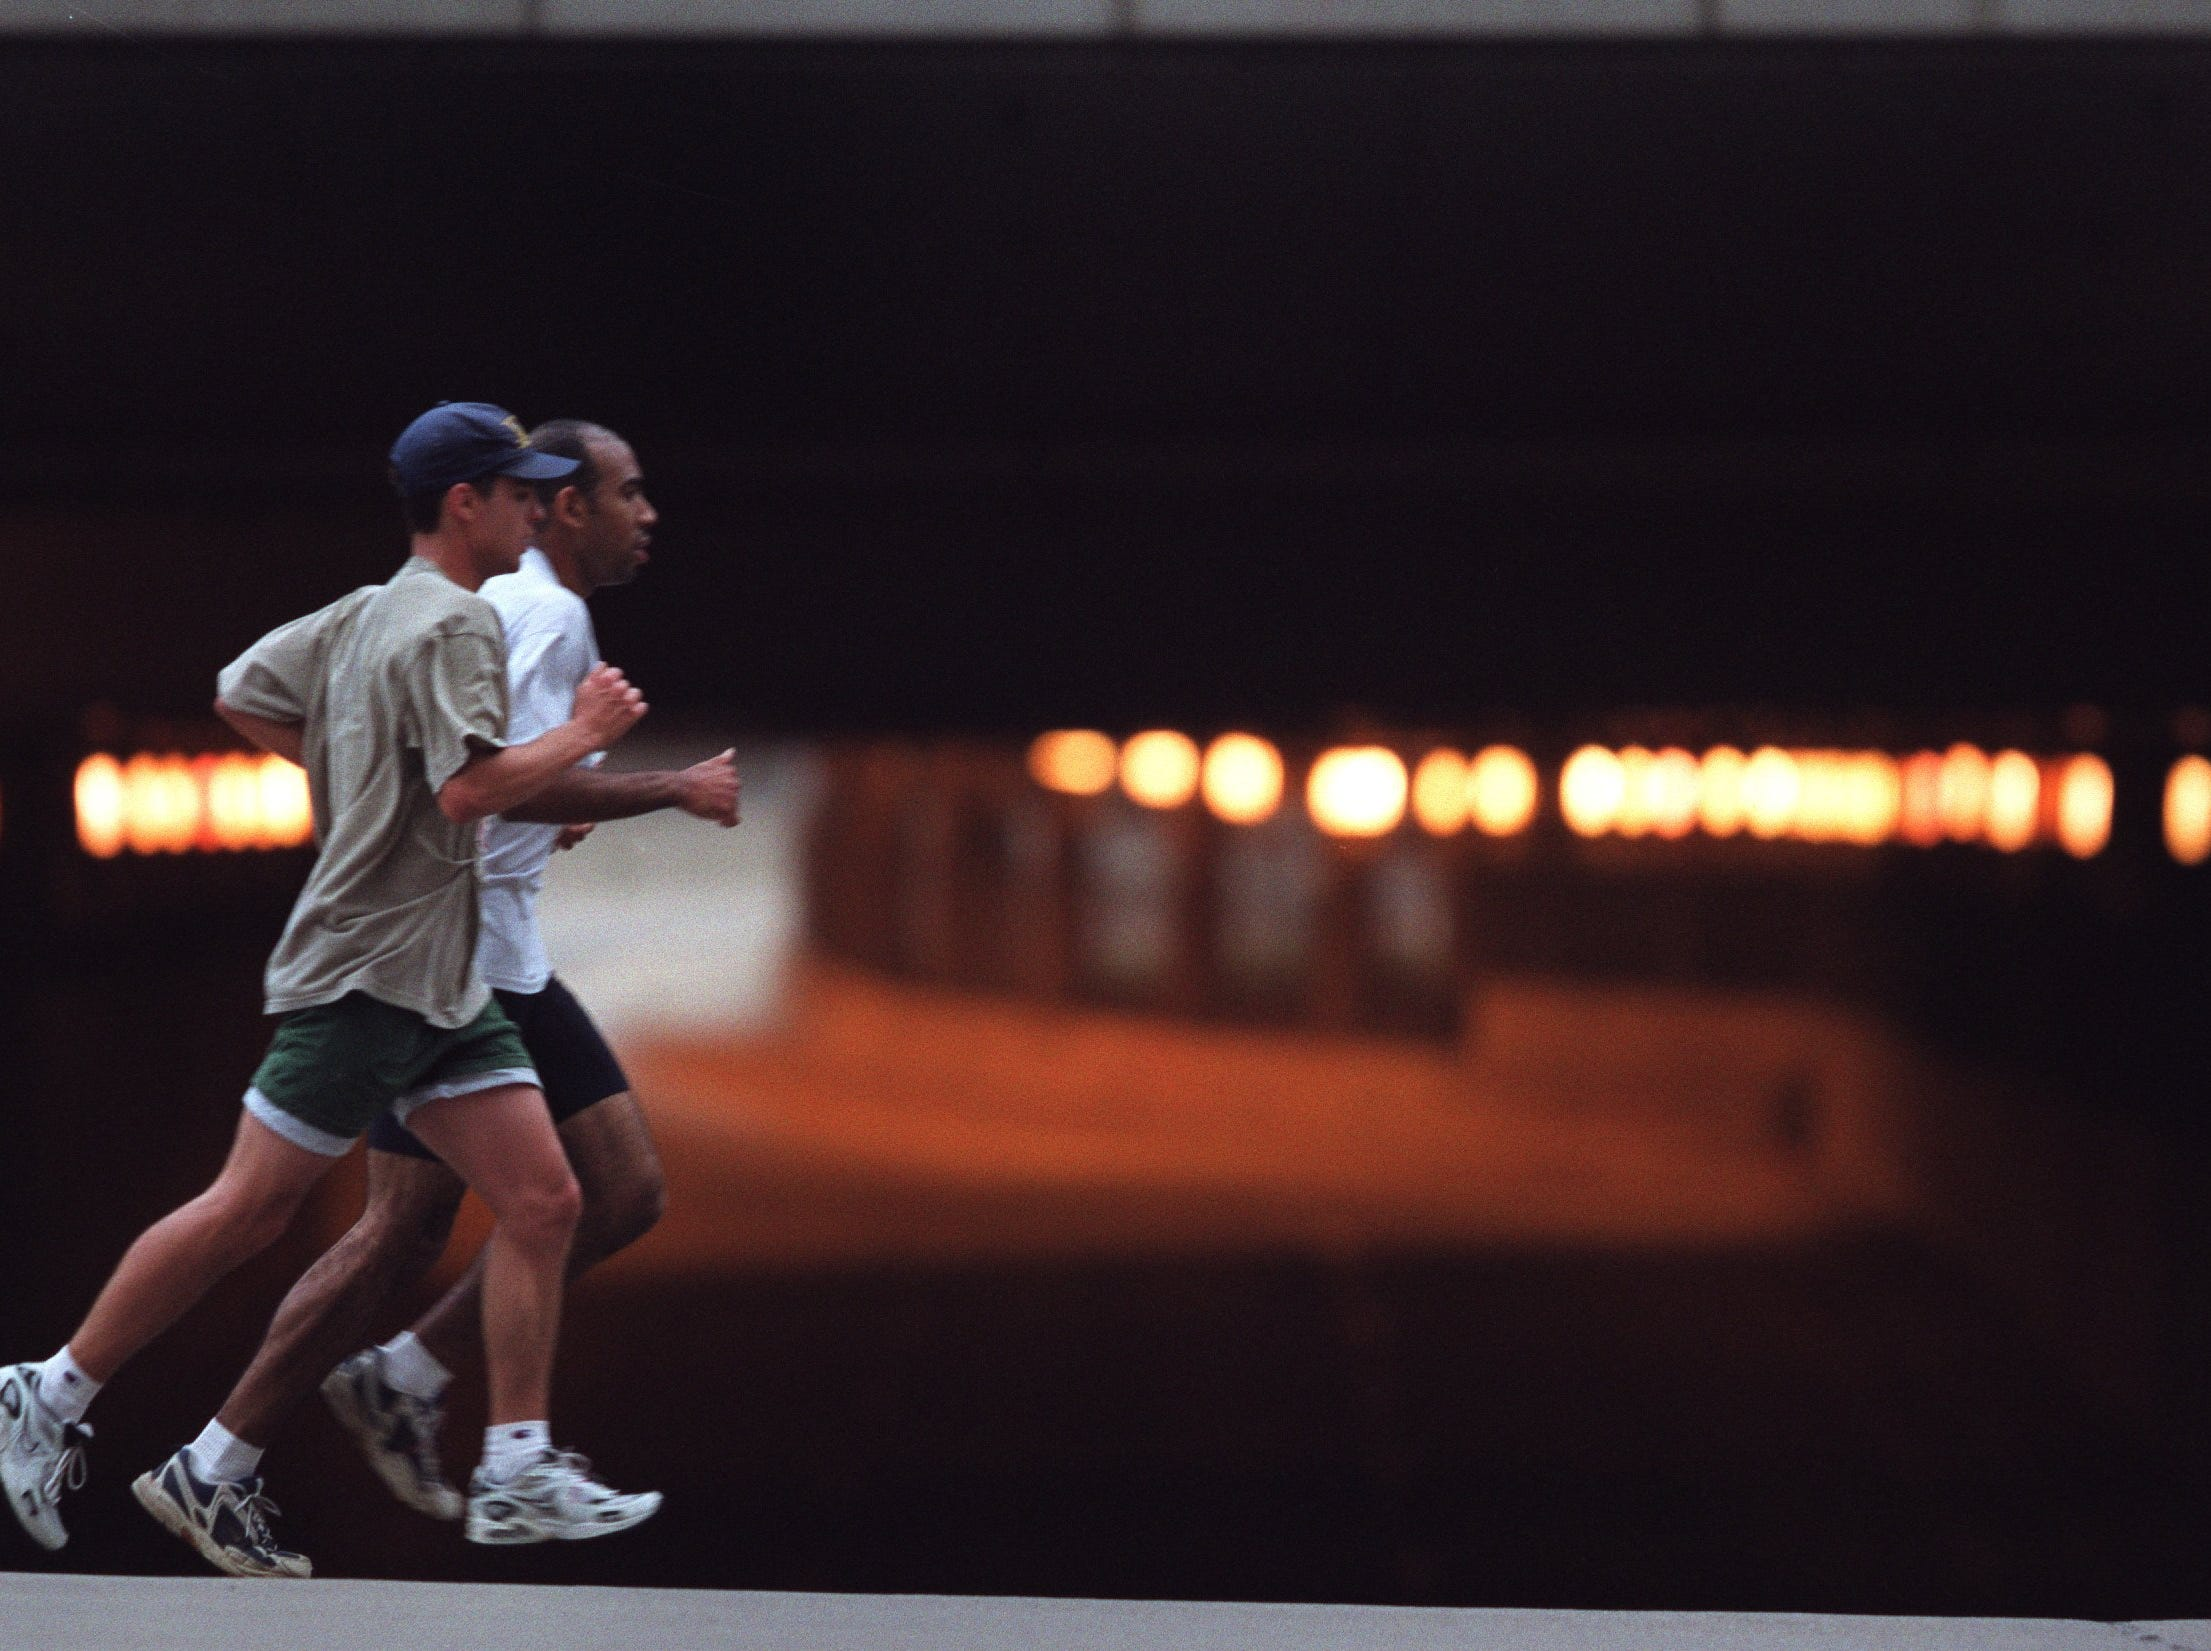 Runners pass the closed underpass below Cobo Hall on Washington Blvd between the 10 and 11 mile marks after already crossing both the bridge and the tunnel to and from Canada during the 23 annual Detroit Free Press/Flagstar Bank International Marathon Sunday October 15, 2000.